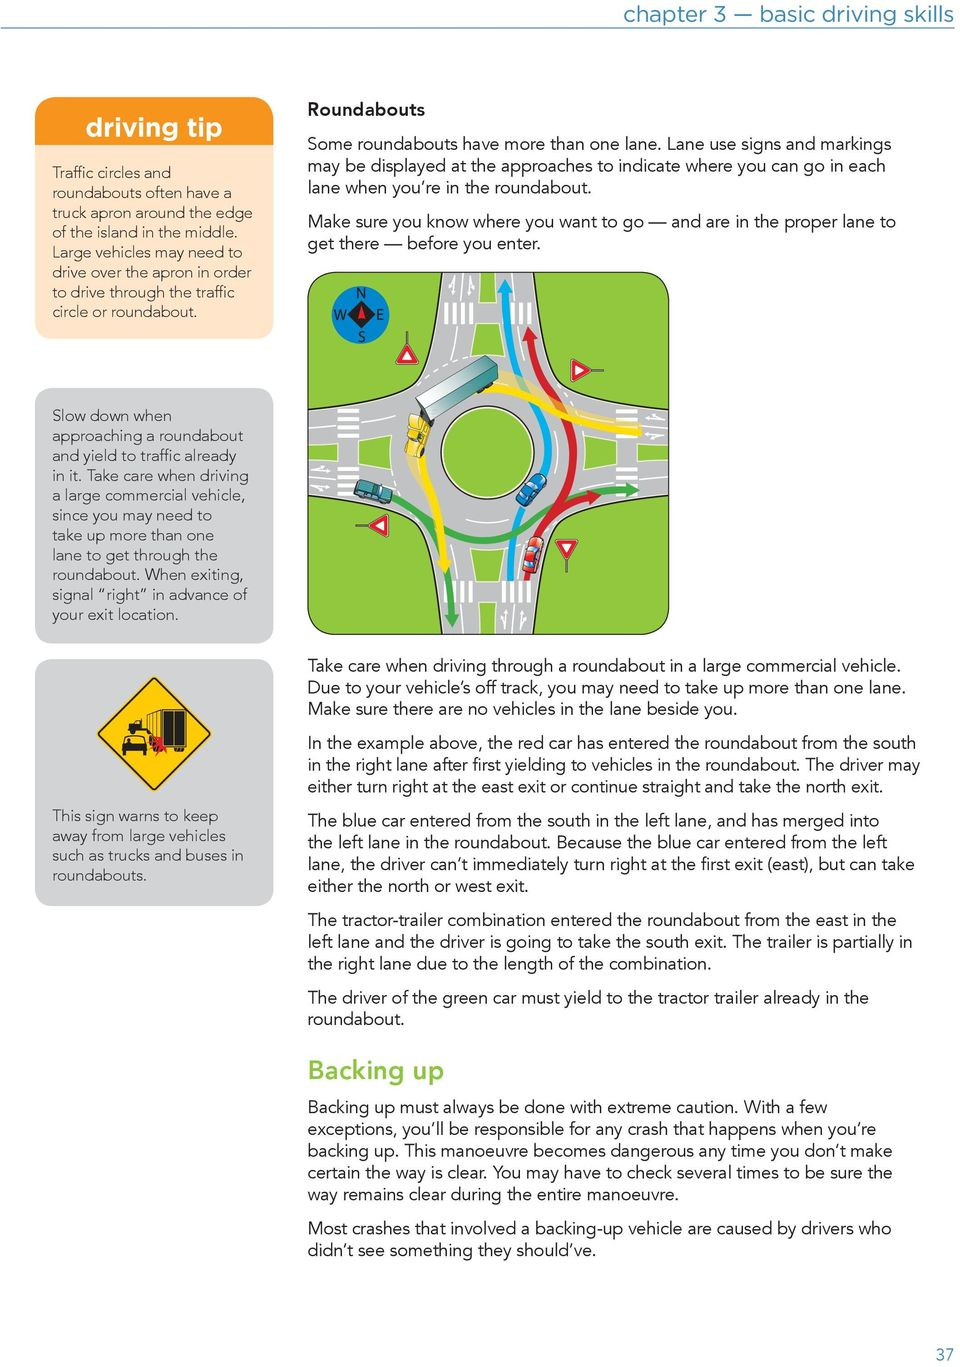 Lane use signs and markings may be displayed at the approaches to indicate where you can go in each lane when you re in the roundabout.